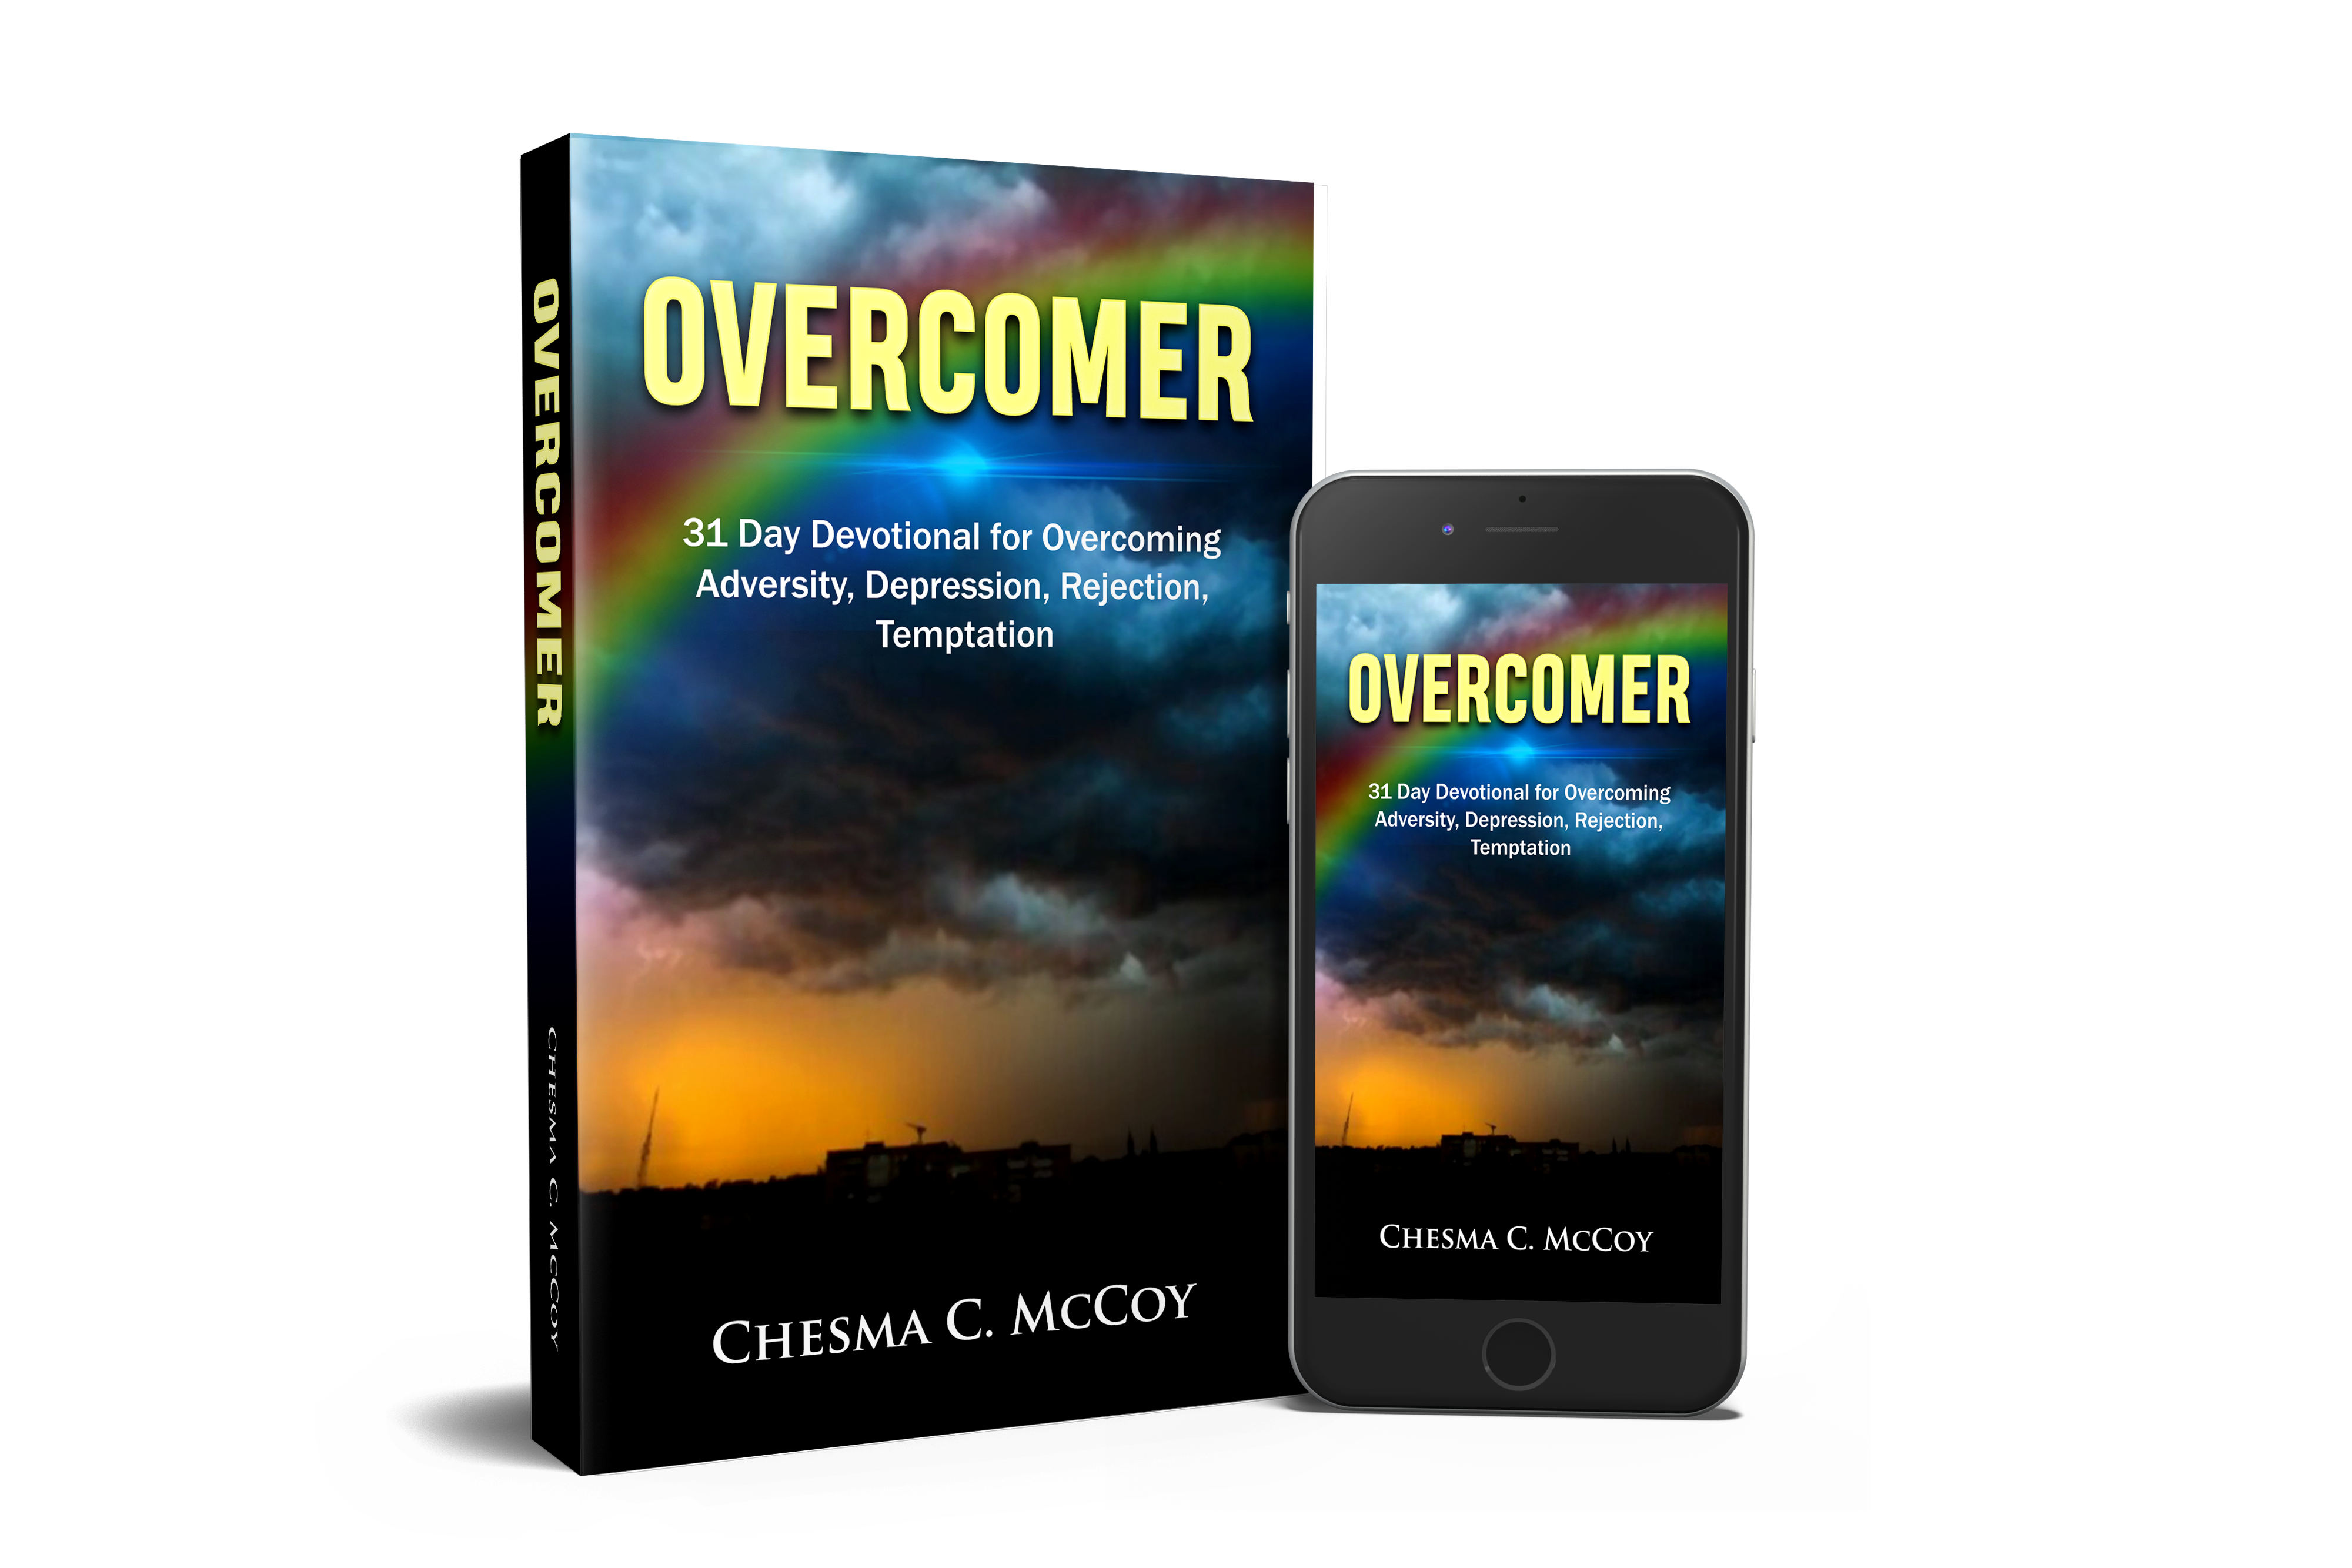 Overcomer: 31 Day Devotional for Overcoming...